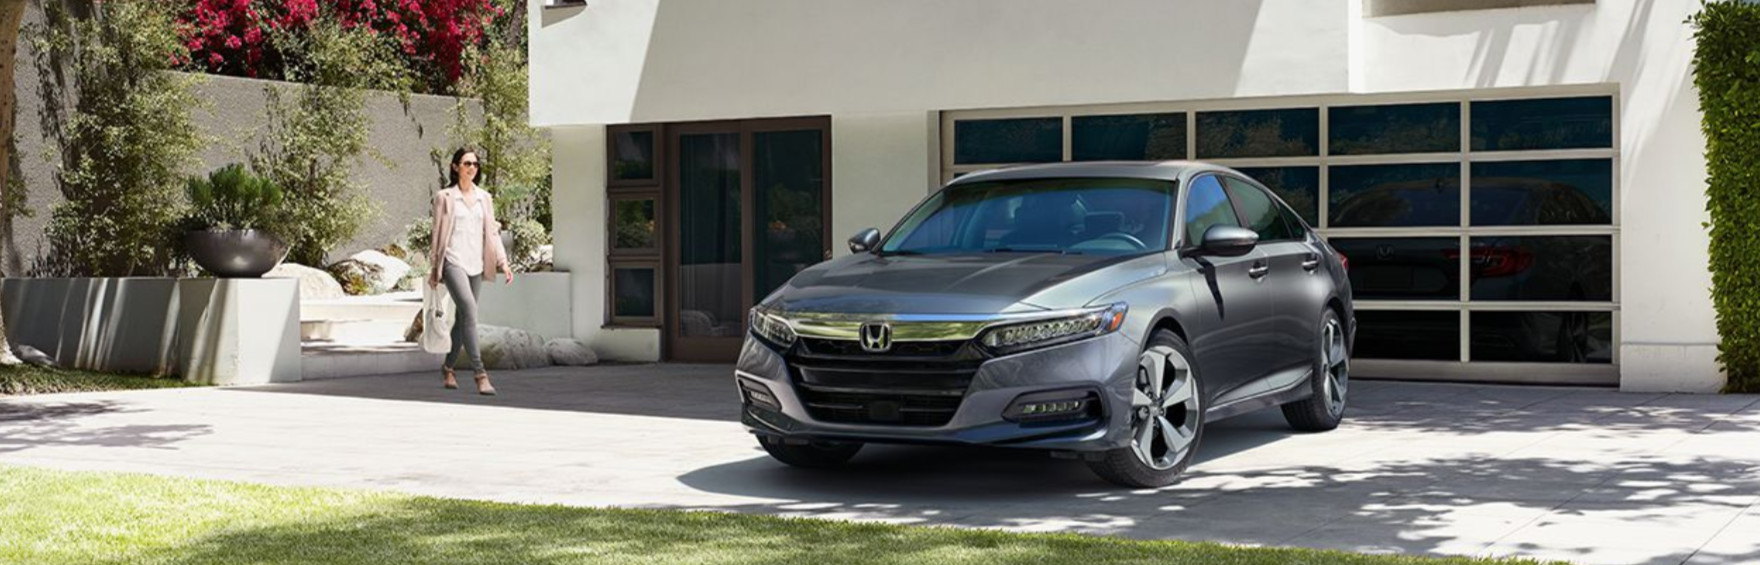 2020 Honda Accord Leasing near Houston, TX